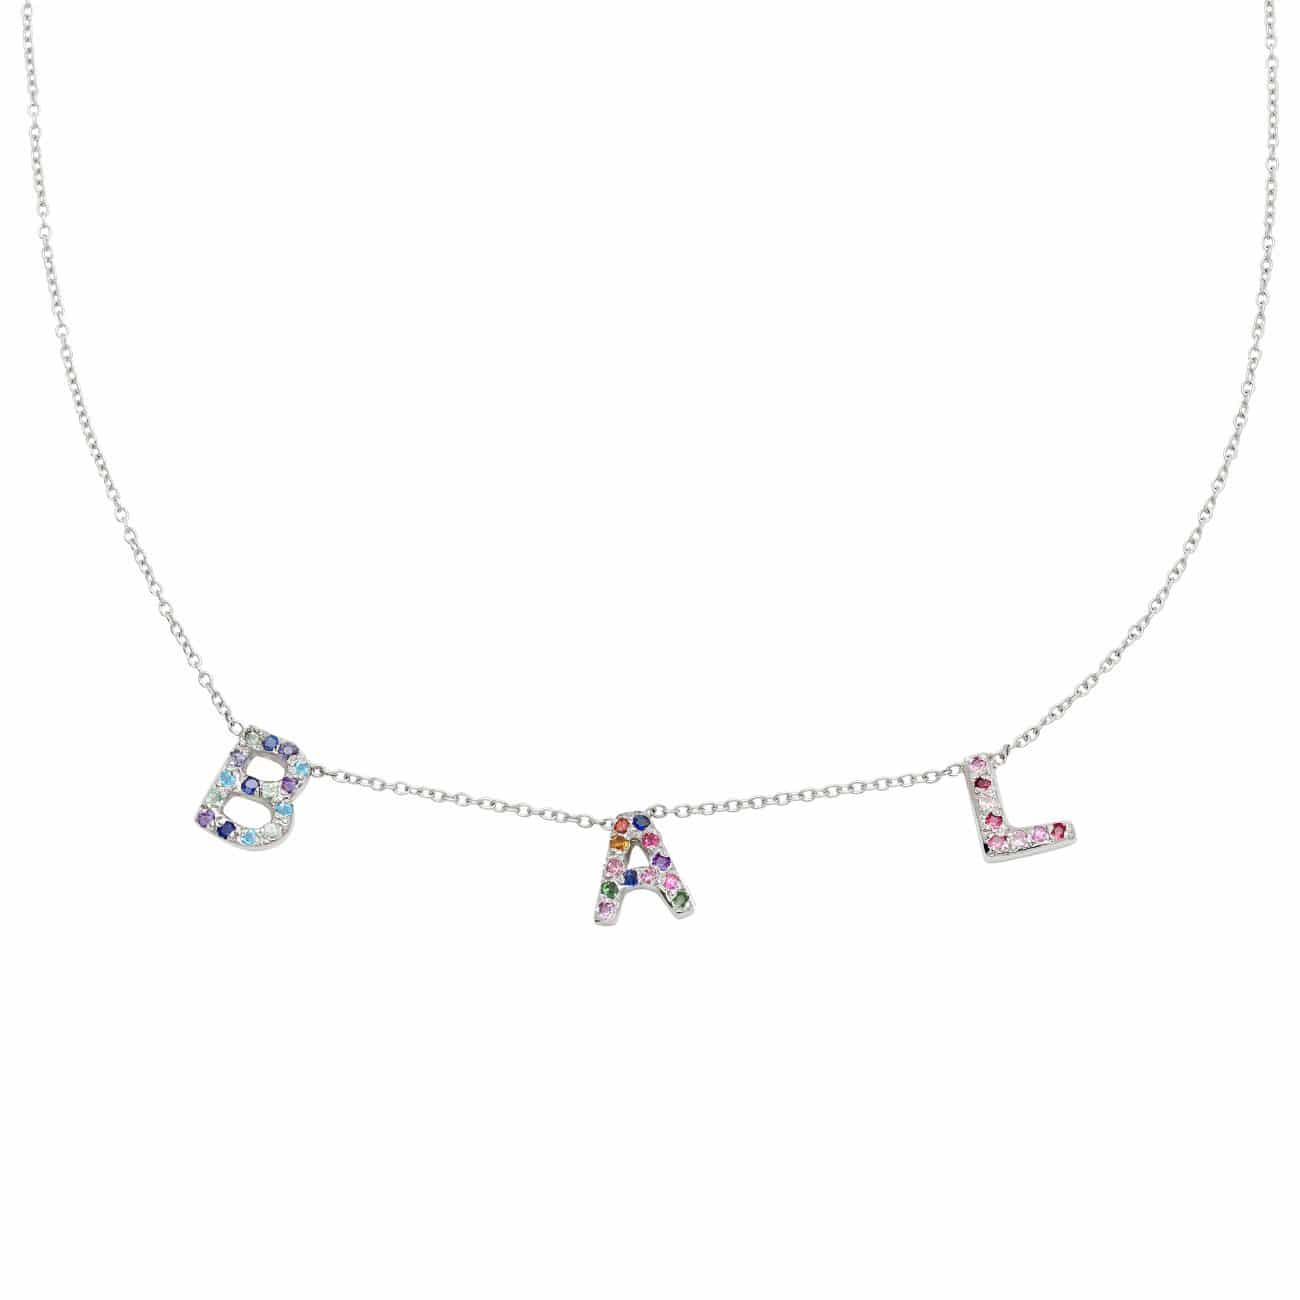 3 Letter Necklace in Platinum